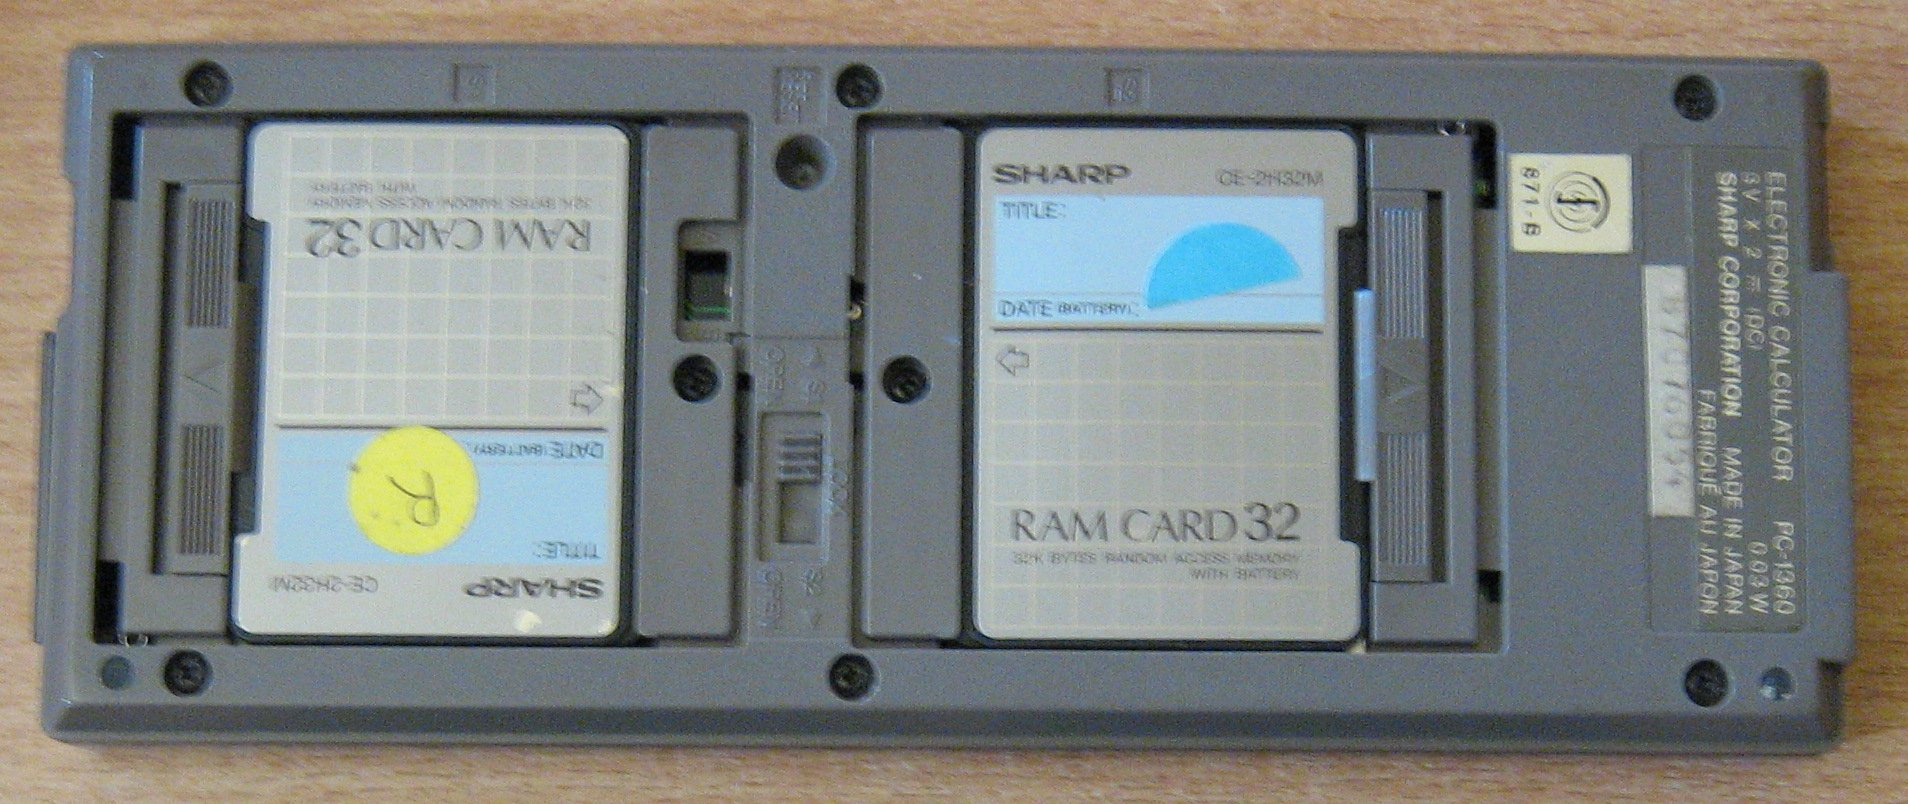 Sharp PC 1360 avec 2 cartes de 32 Ko